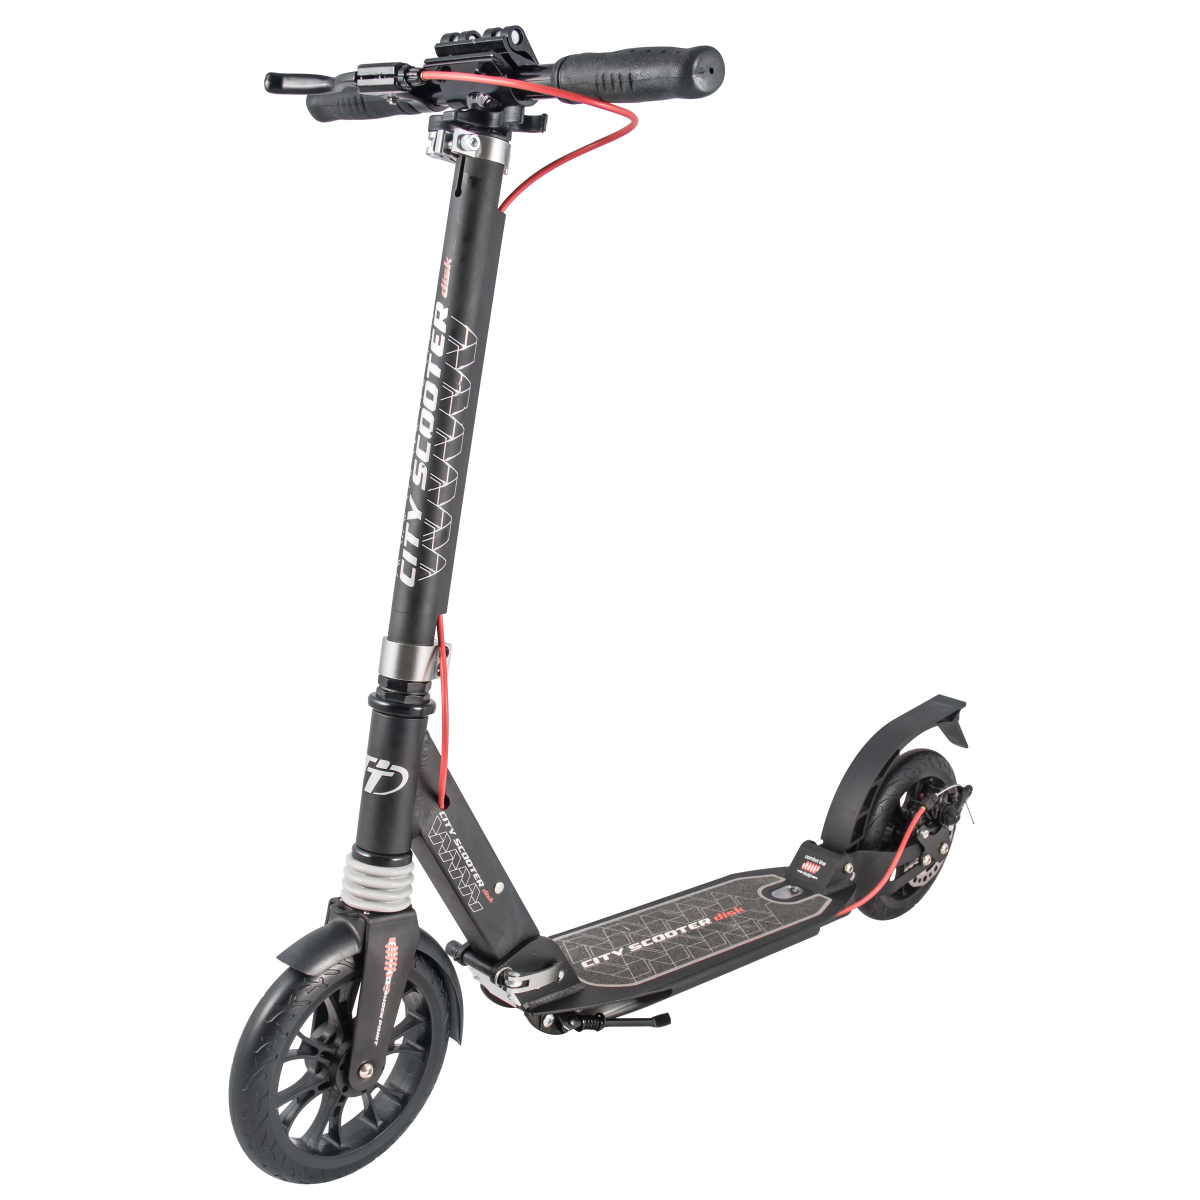 Самокат TechTeam City Scooter Disk Brake 2019 черный